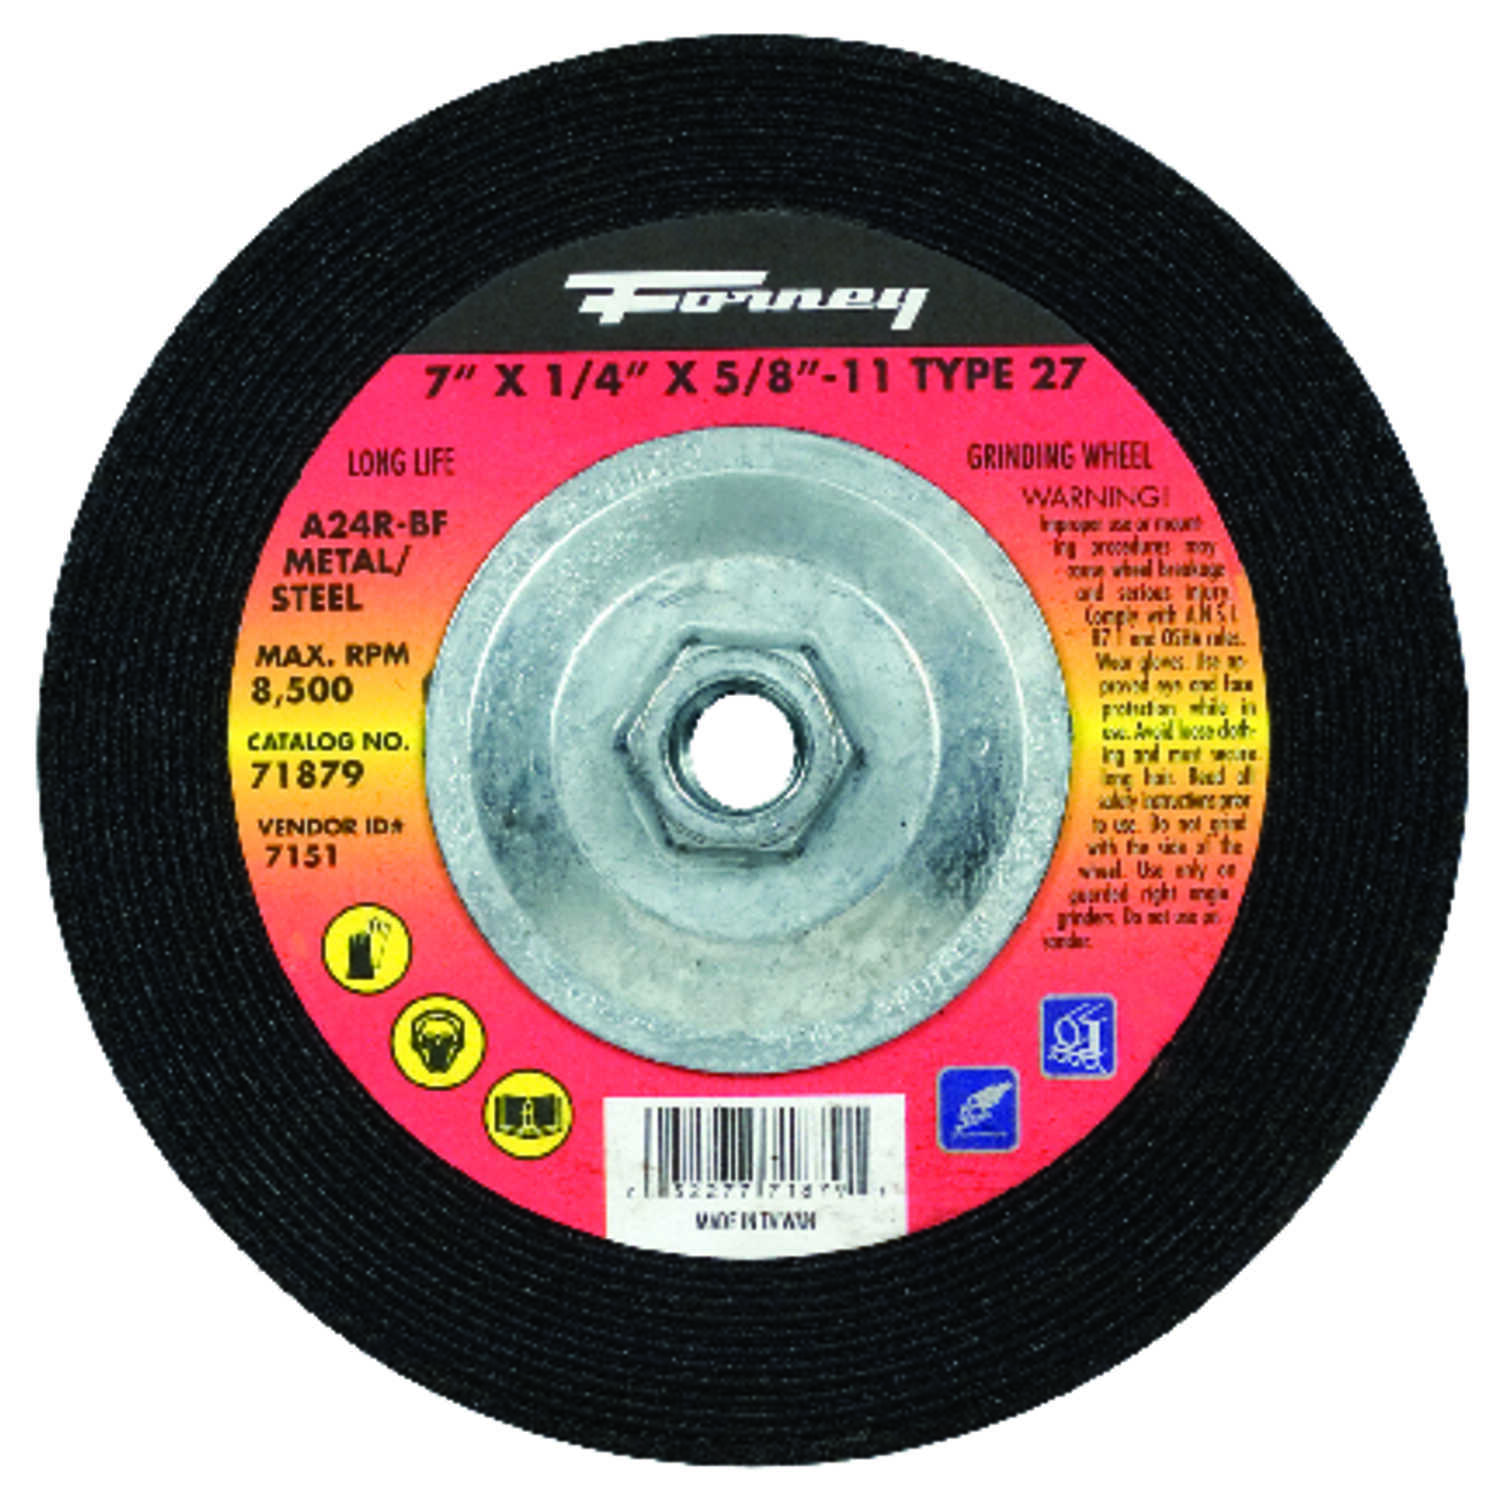 Forney  7 in. Dia. x 5/8 in.   x 1/4 in. thick  Aluminum Oxide  Metal Grinding Wheel  8500 rpm 1 pc.